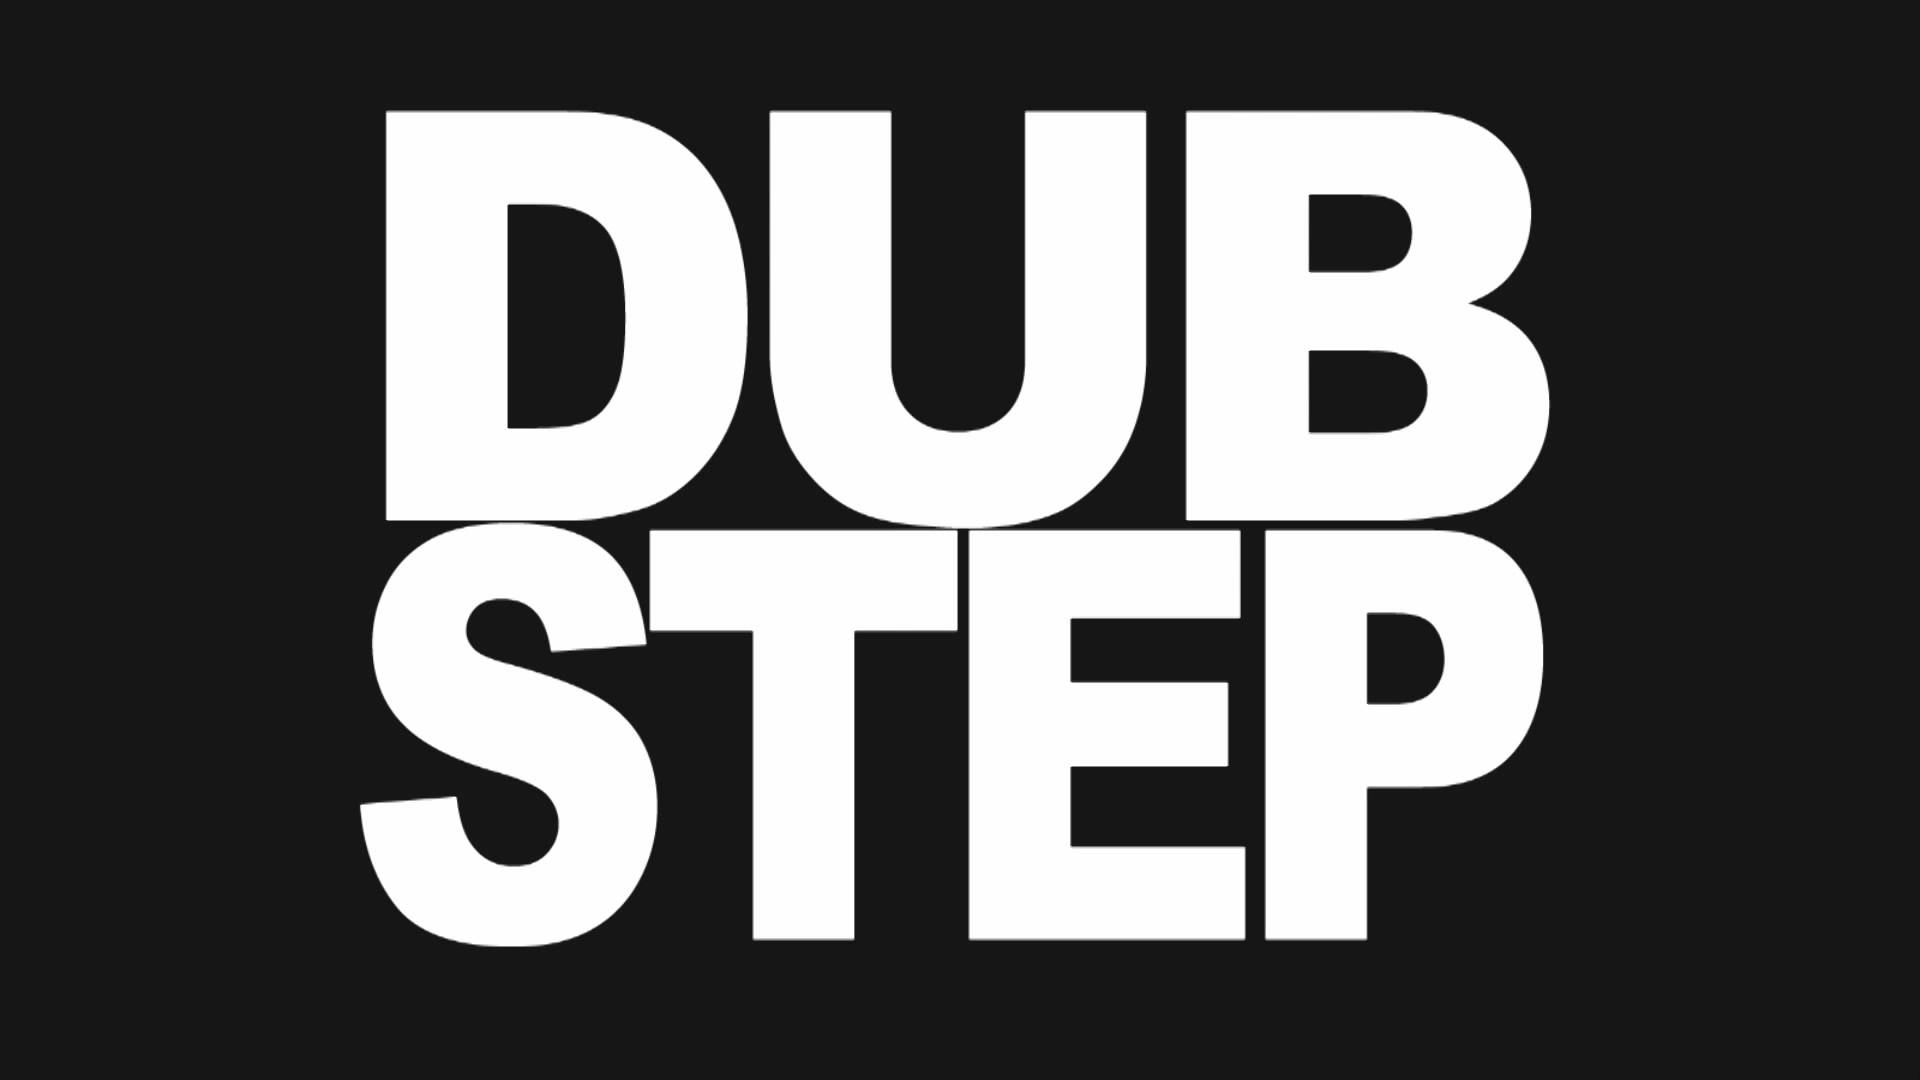 Dubstep clipart #14, Download drawings